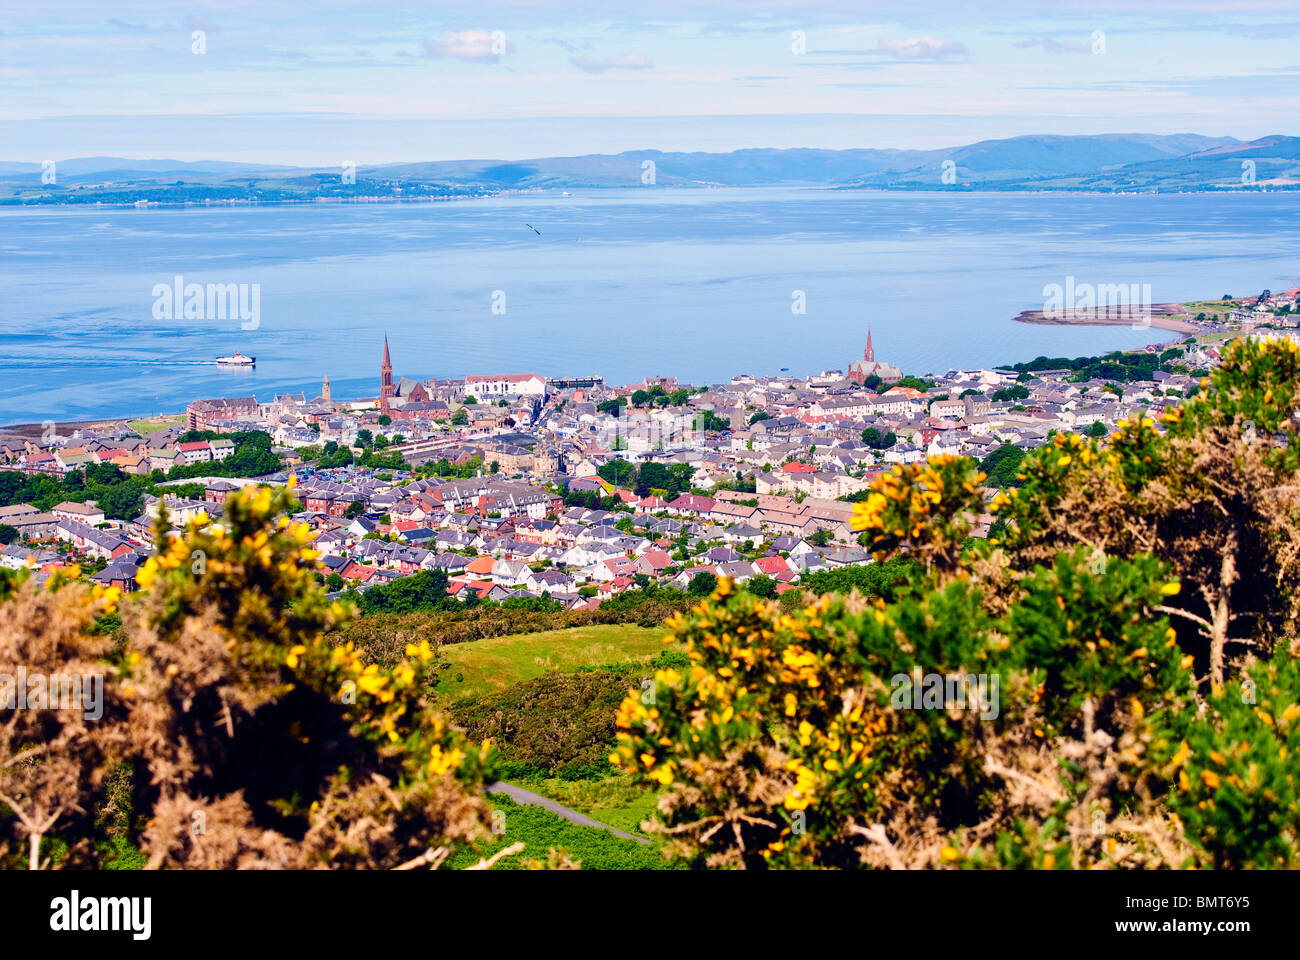 The Seaside Town of Largs, Ayrshire, Scotland, seen from Castle Hill. - Stock Image